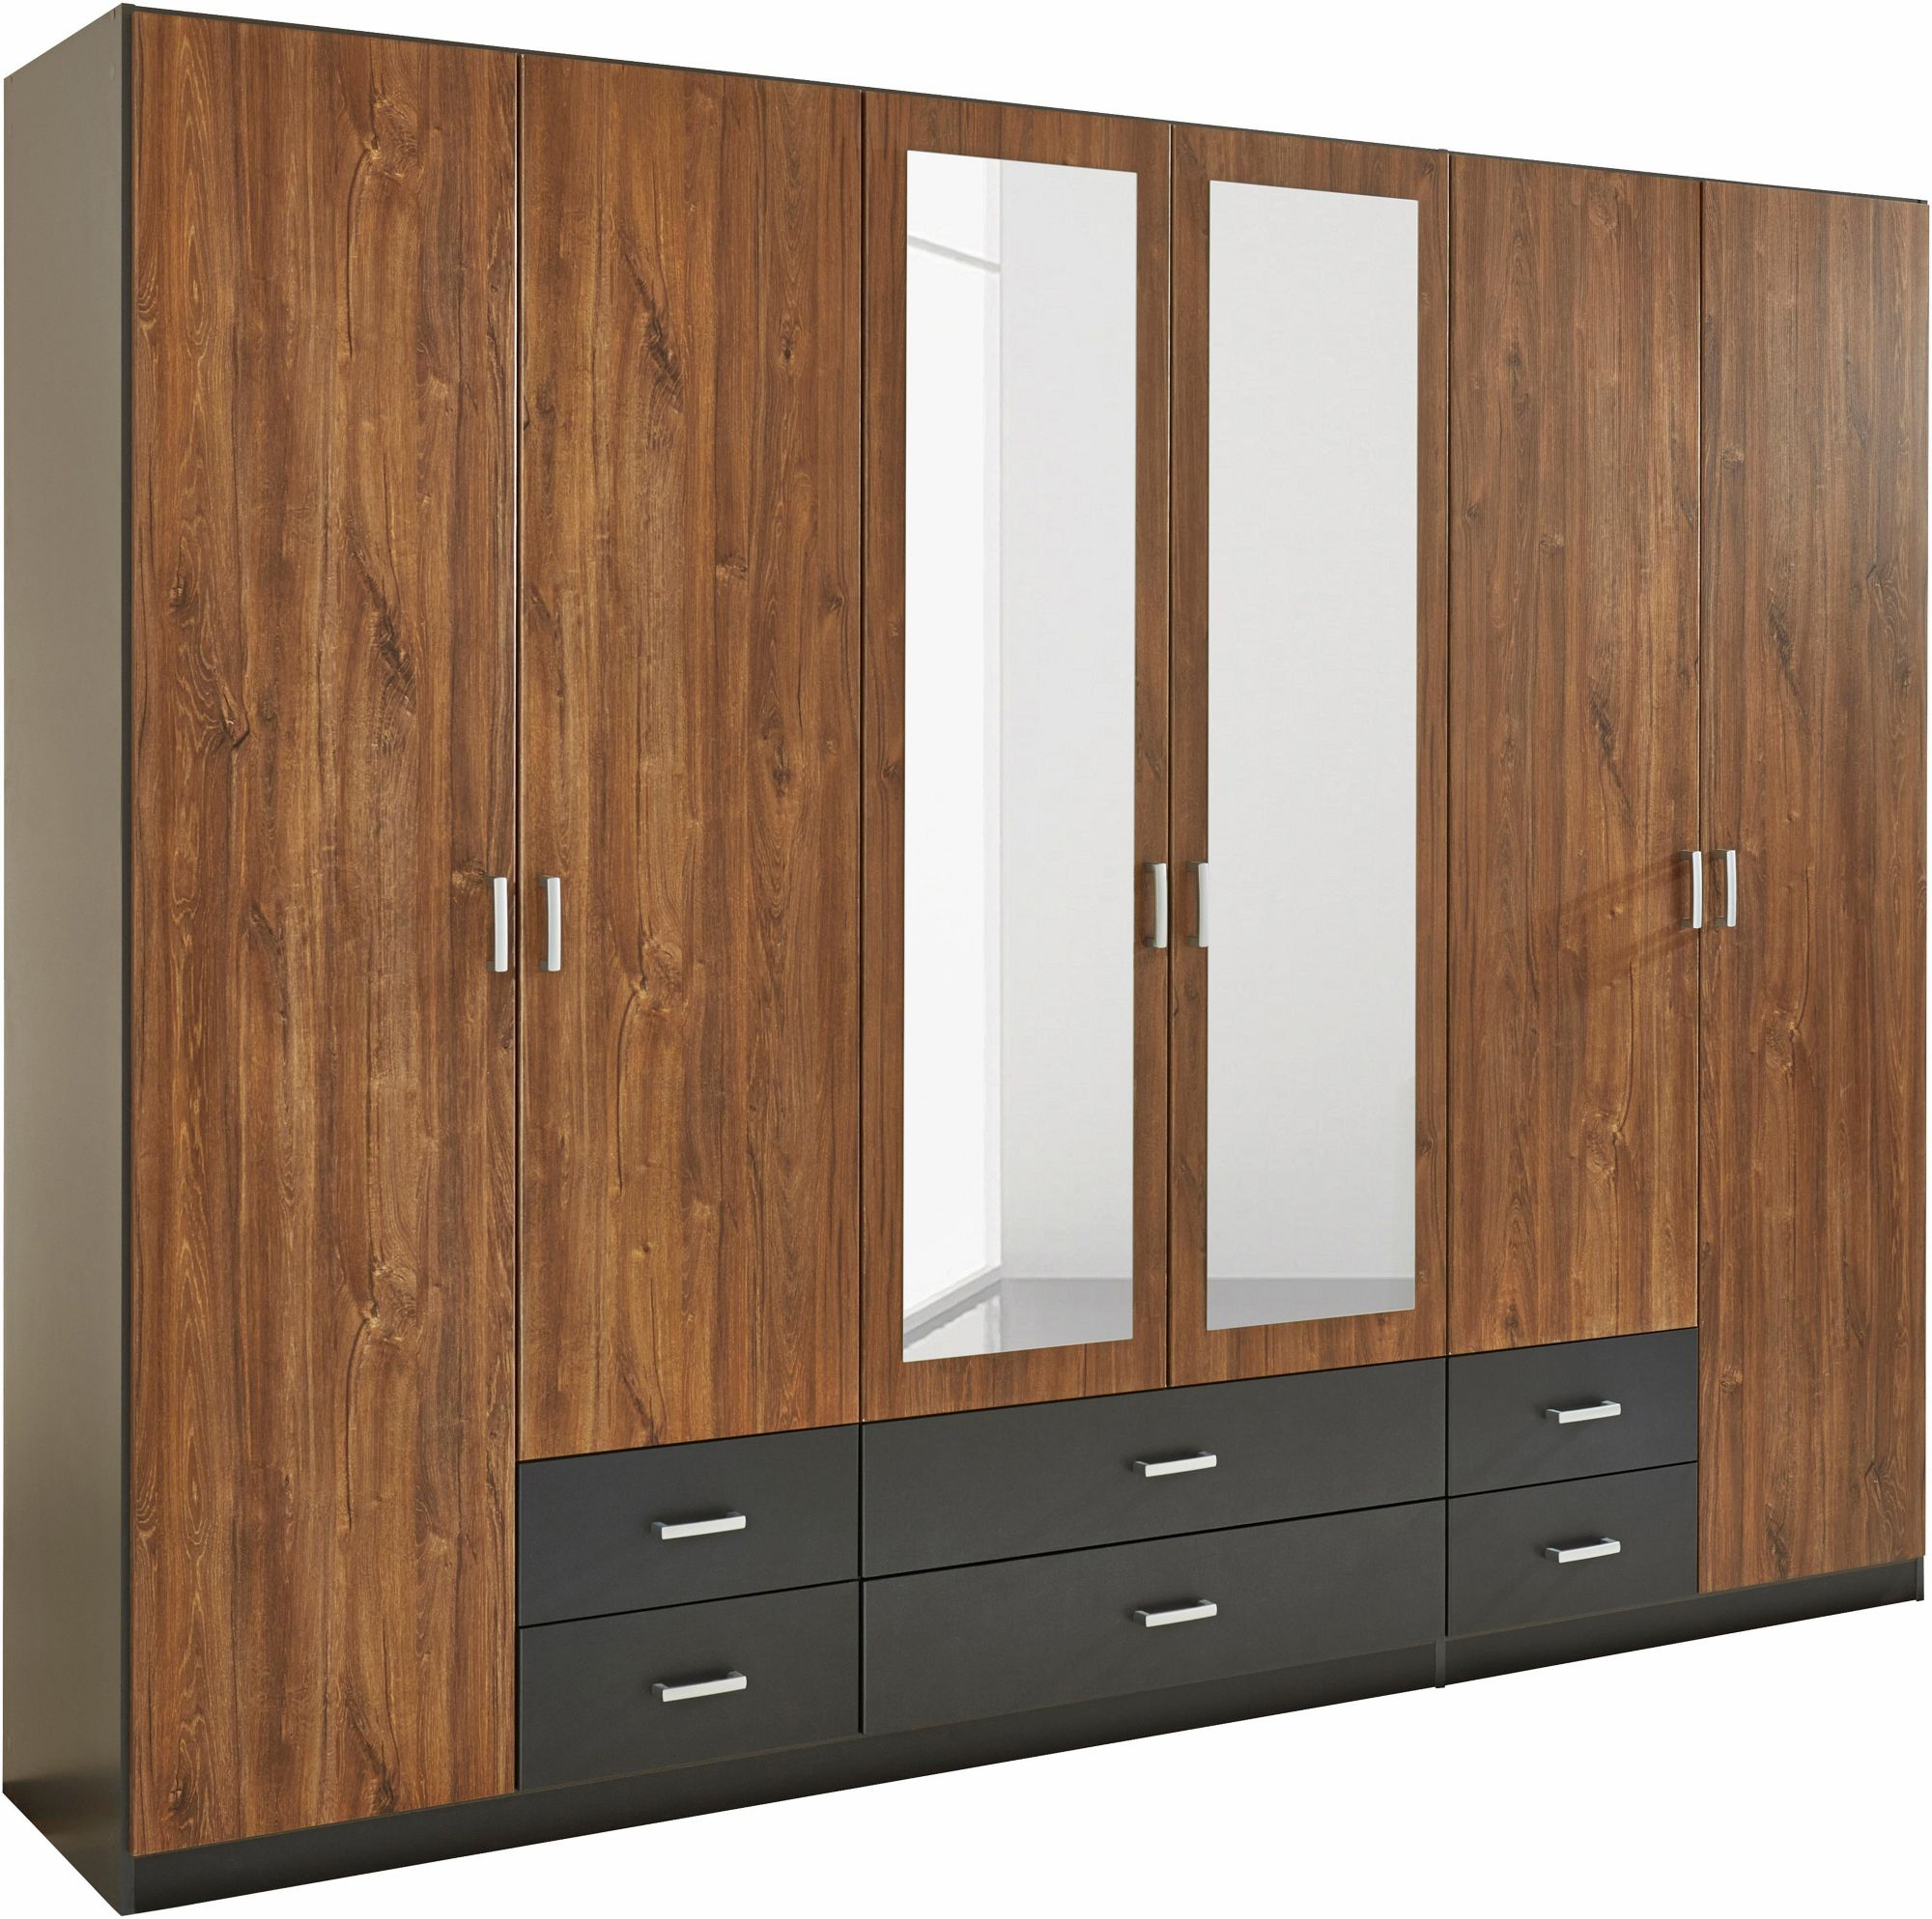 rauch kleiderschrank zubeh r rauch kleiderschrank mit spiegel kleiderschrank rauch online. Black Bedroom Furniture Sets. Home Design Ideas